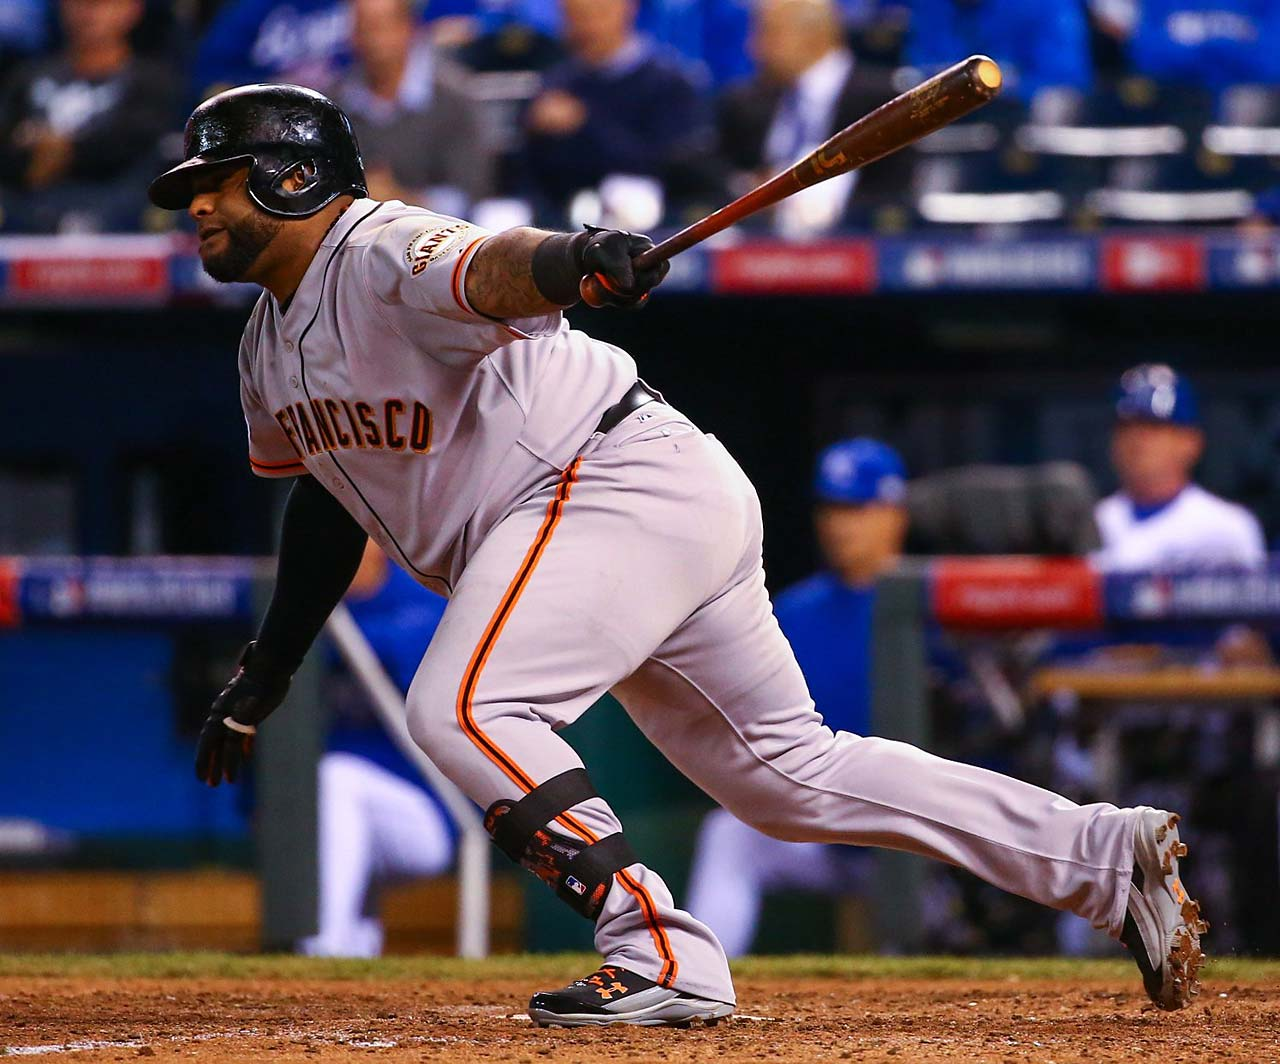 Pablo Sandoval, the World Series MVP in 2012, delivered this RBI single in the seventh.